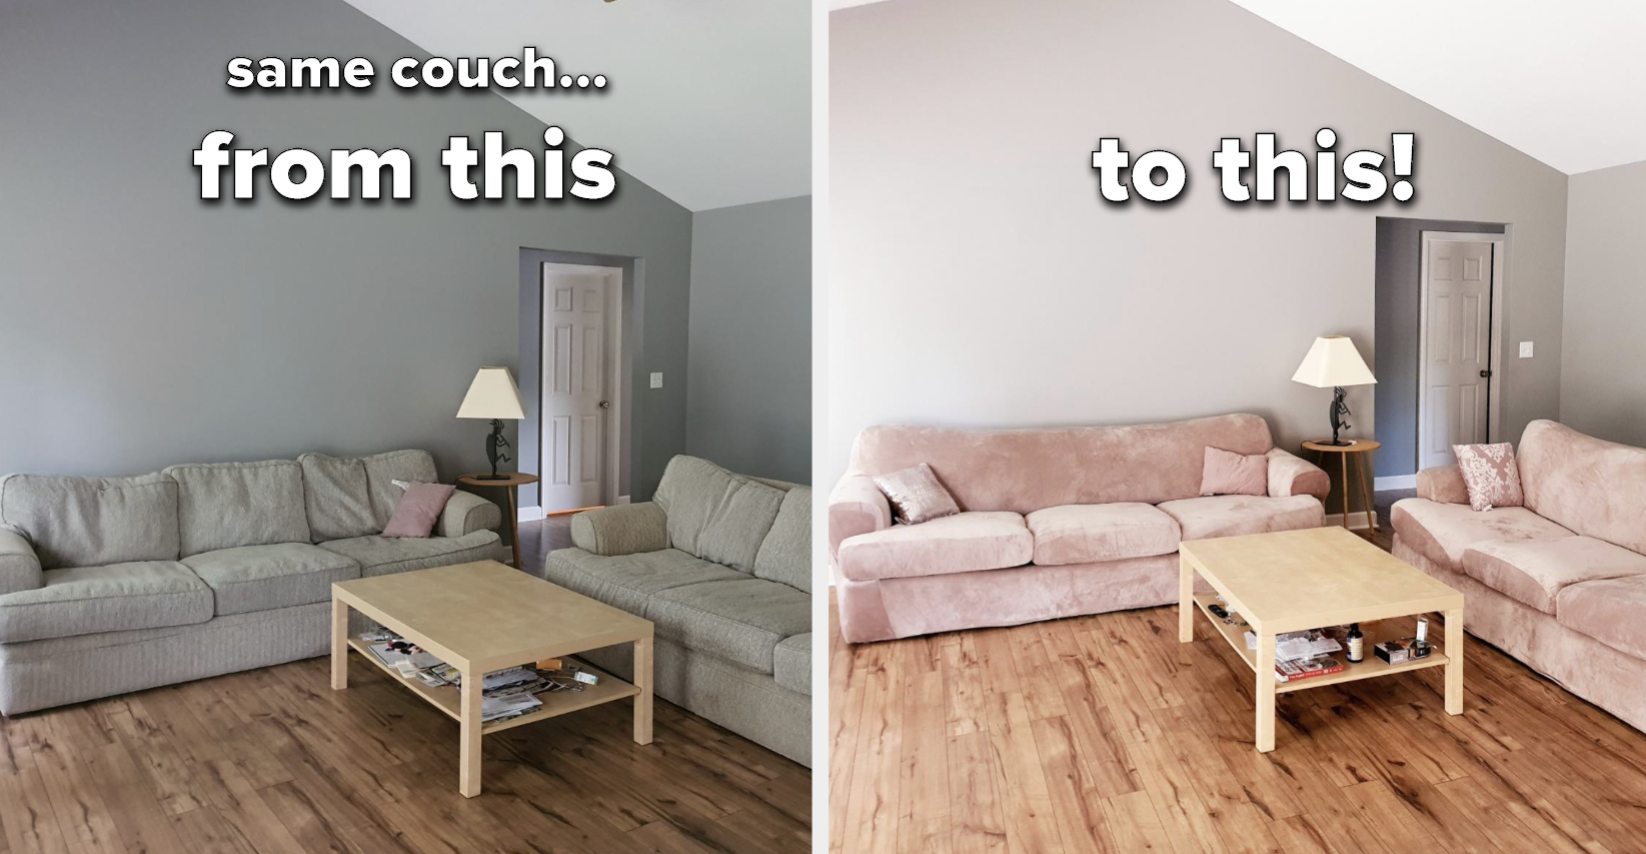 Reviewer before/after of their couch with the pink velvet slip added. The after pic shows couches that look brand new and completely different.